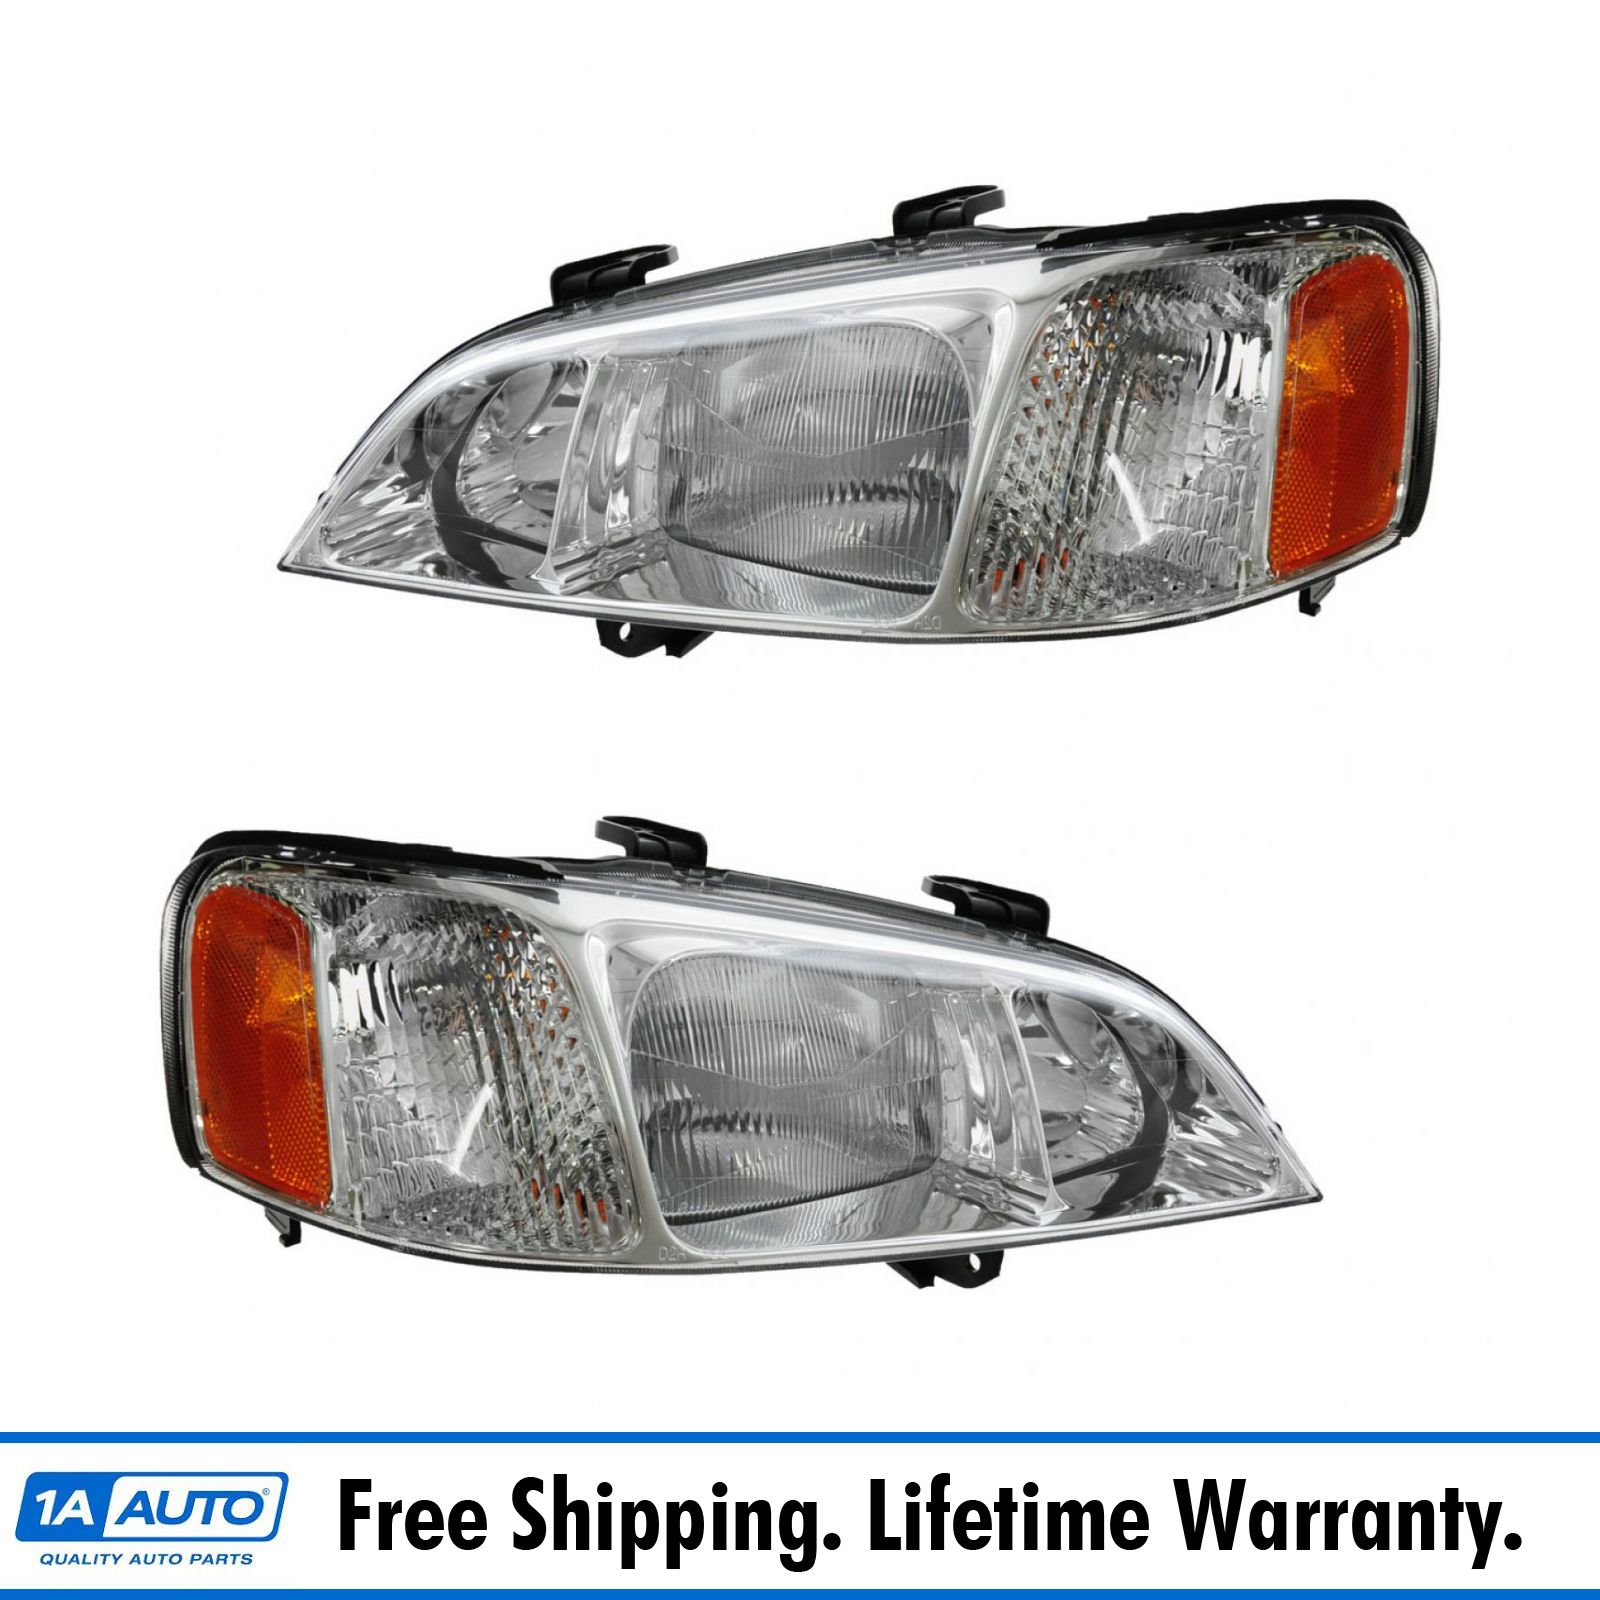 Headlights Headlamps Left & Right Pair Set NEW For 99-01